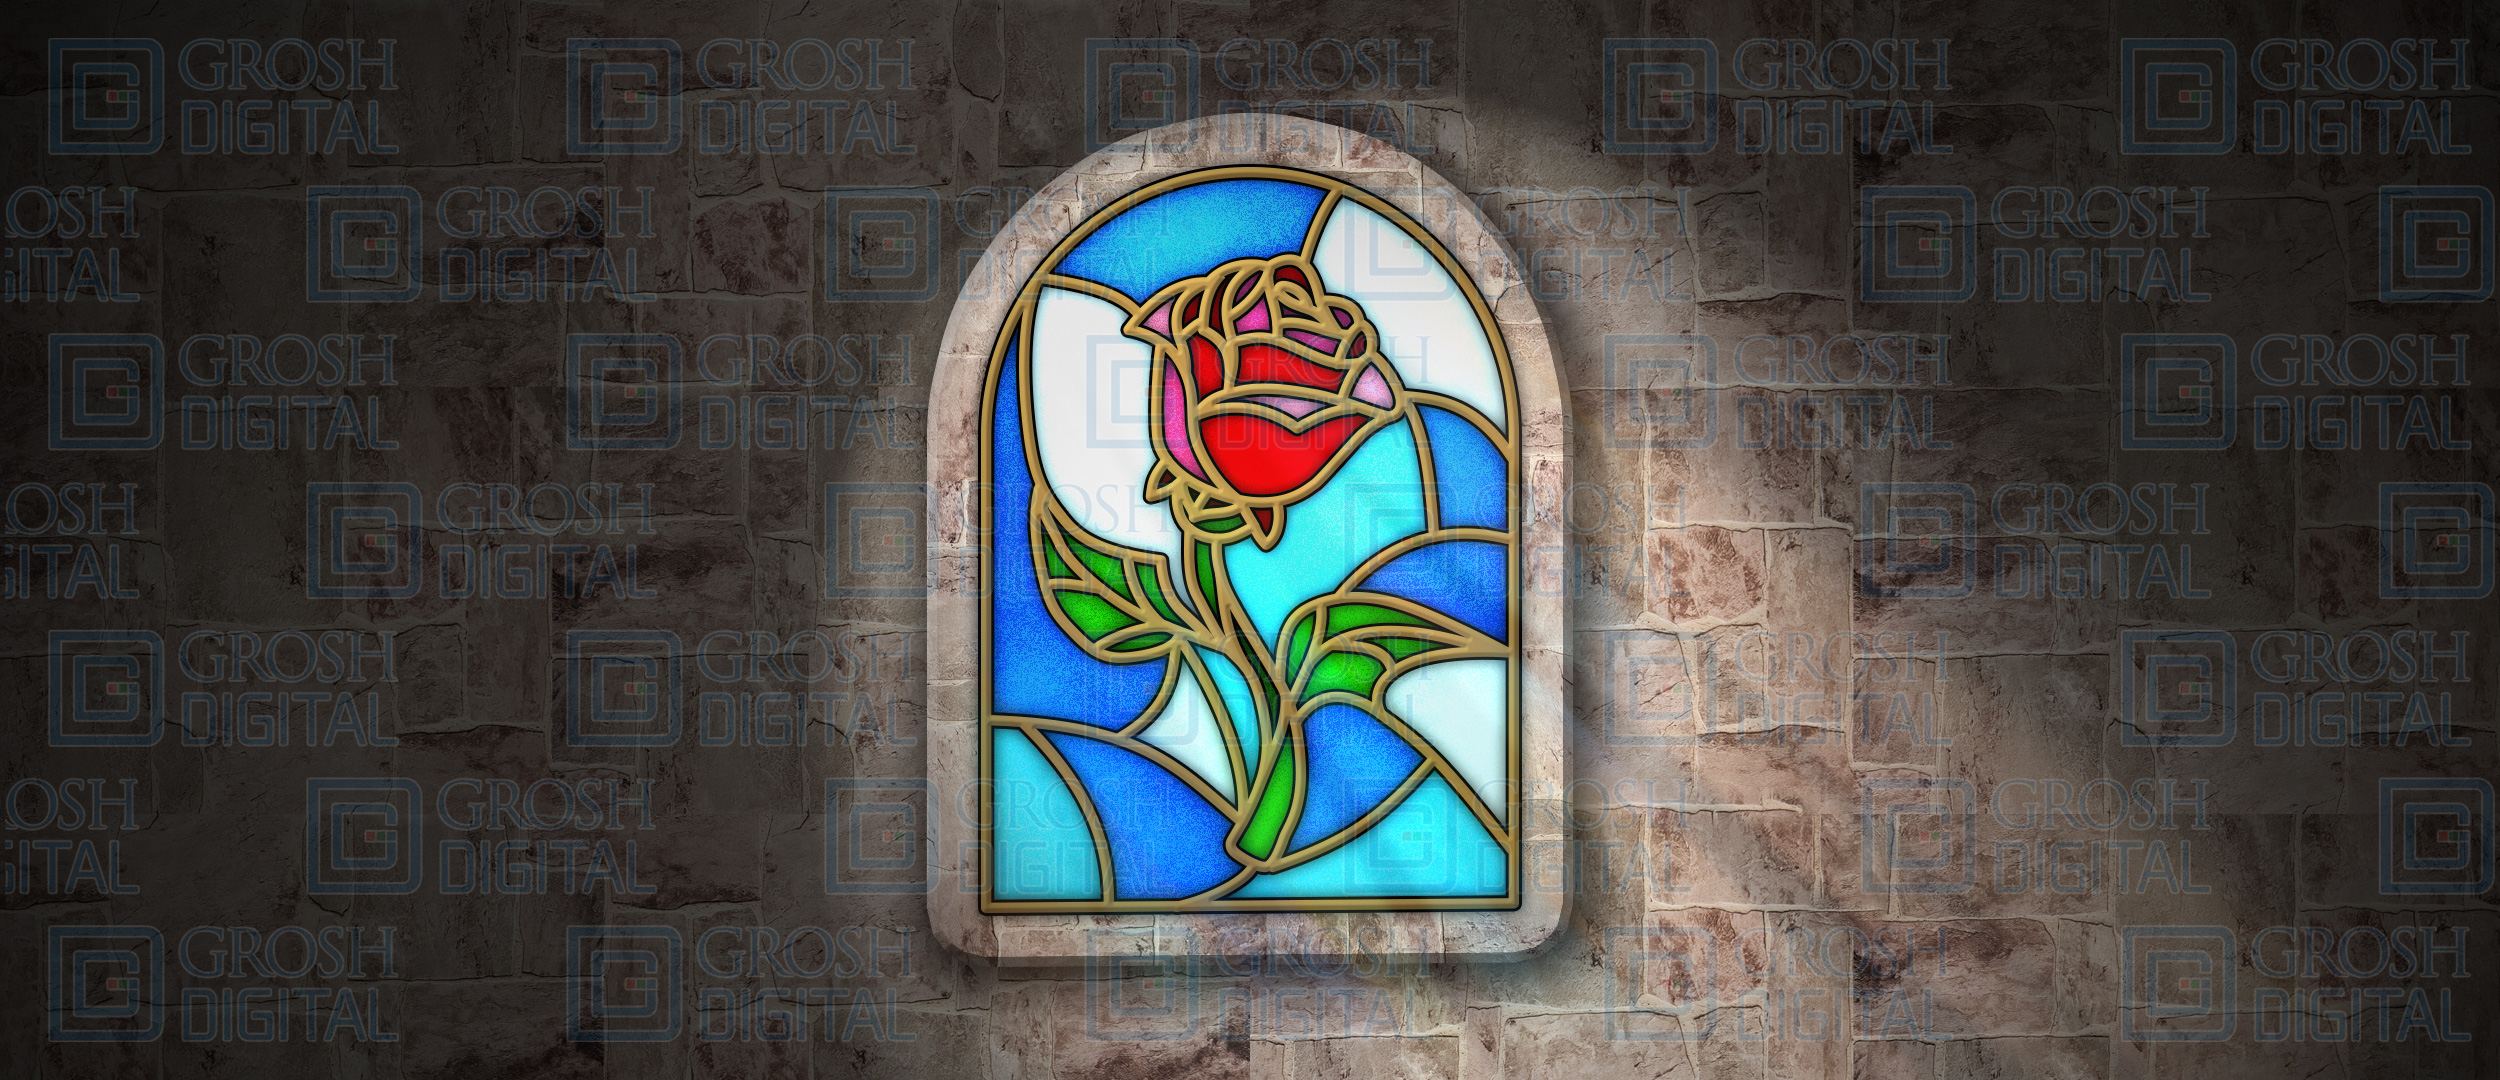 Enchanted Rose Stained Glass Projected Backdrop for Abstract, Beauty and the Beast, Castles